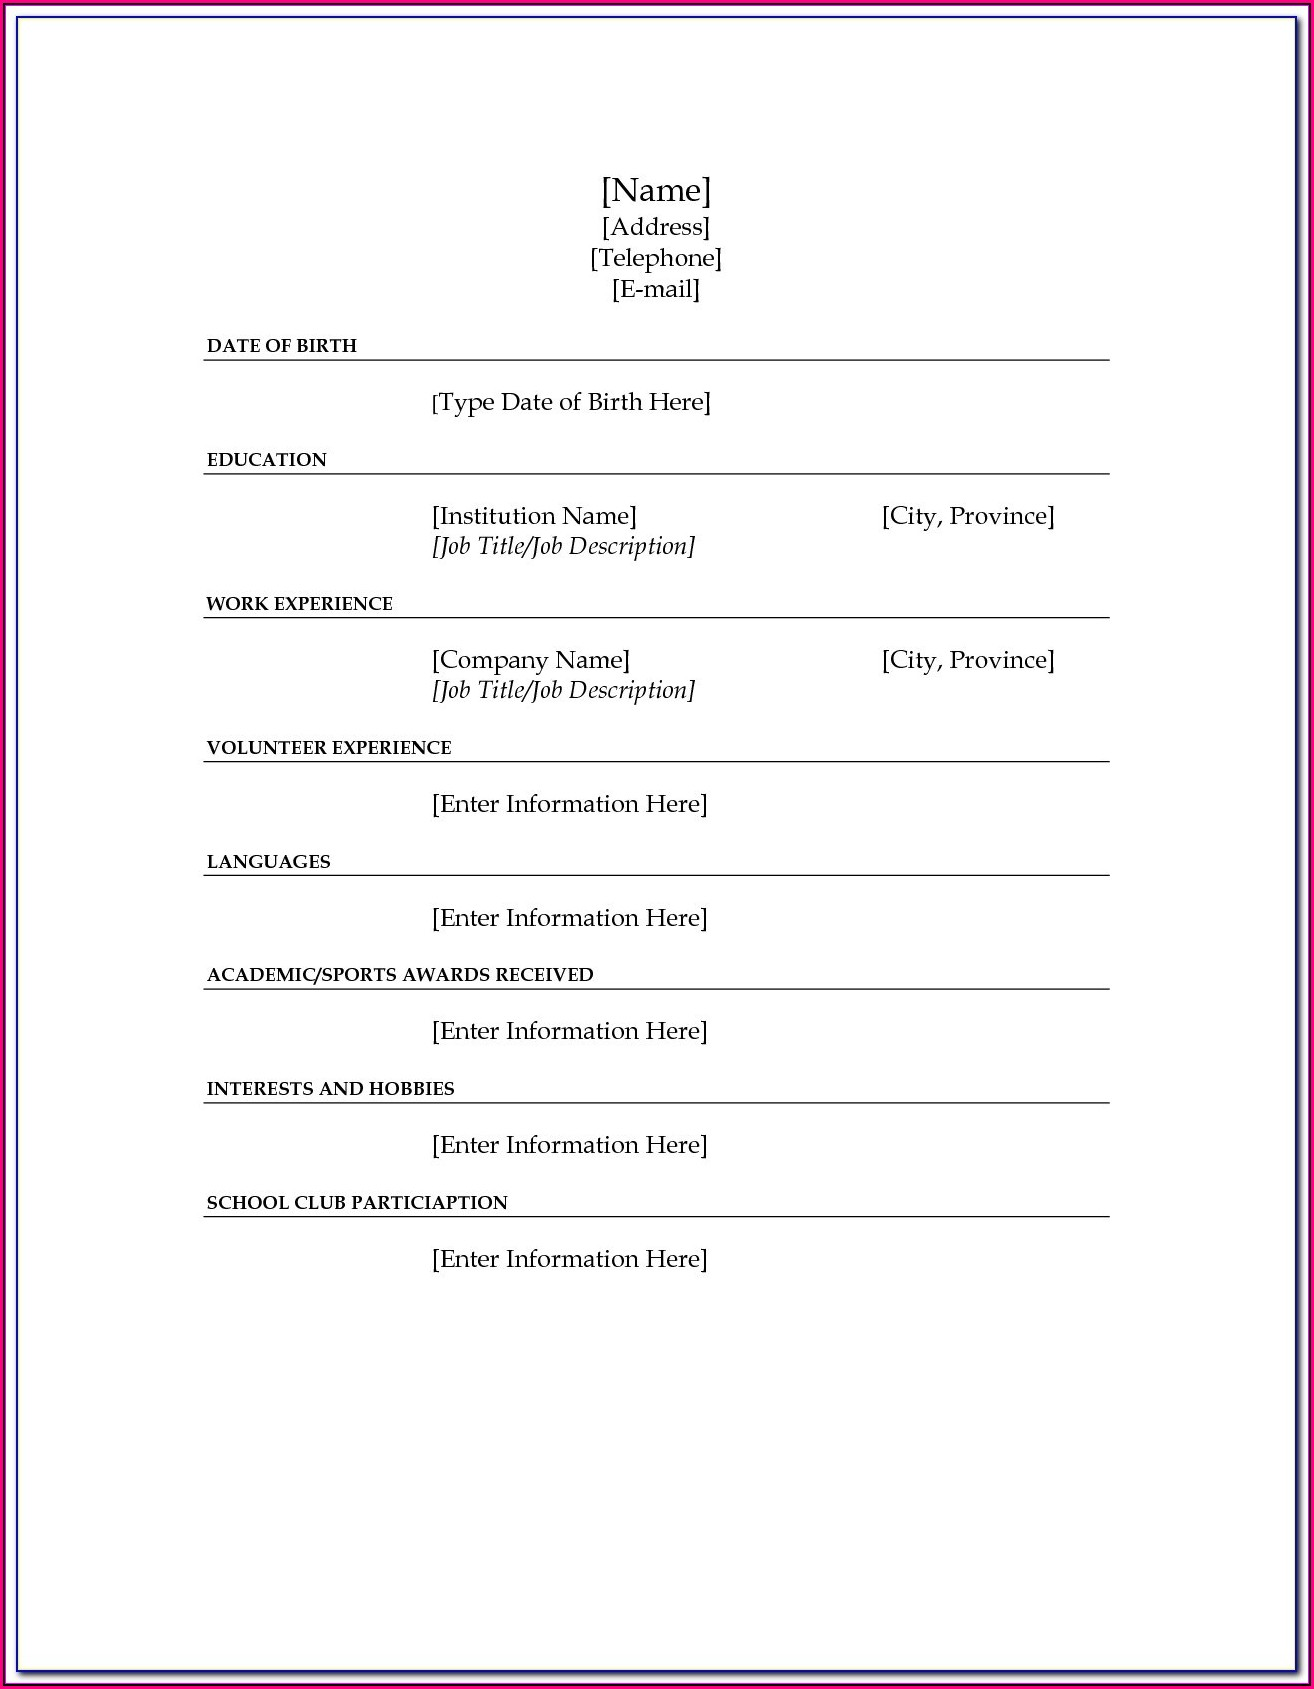 Resume Fill In The Blank Template